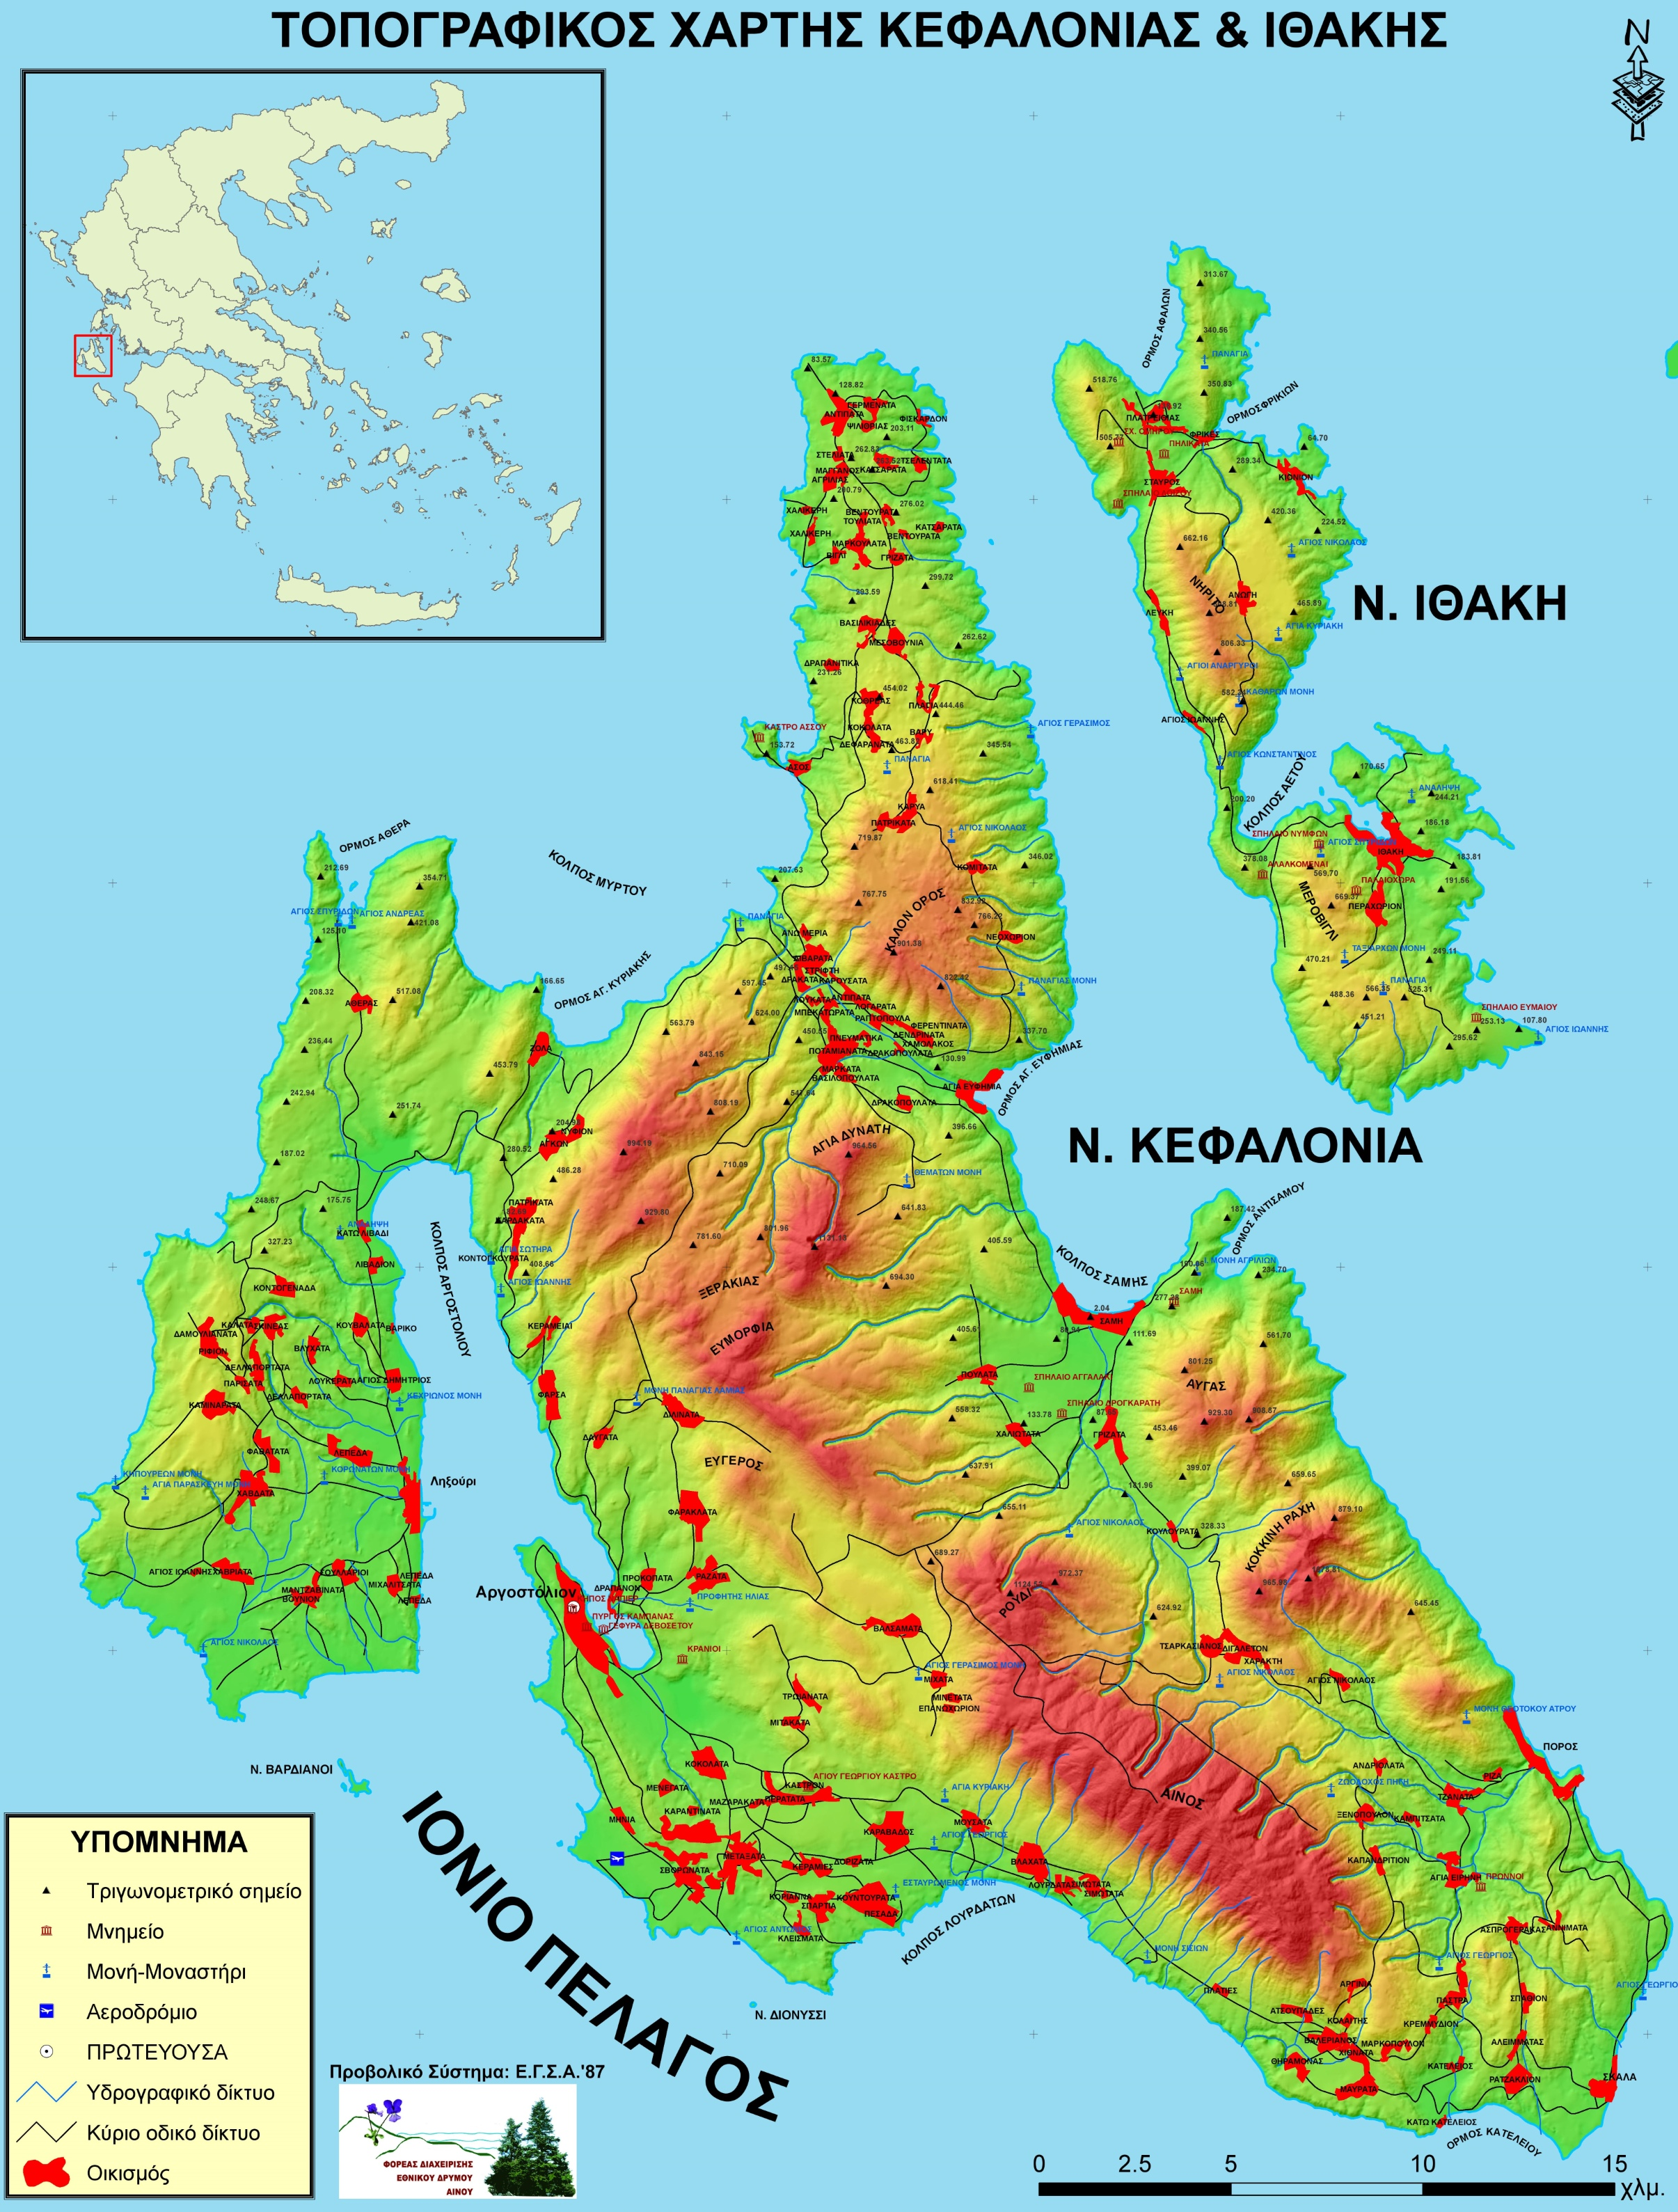 Kefalonia topographic map